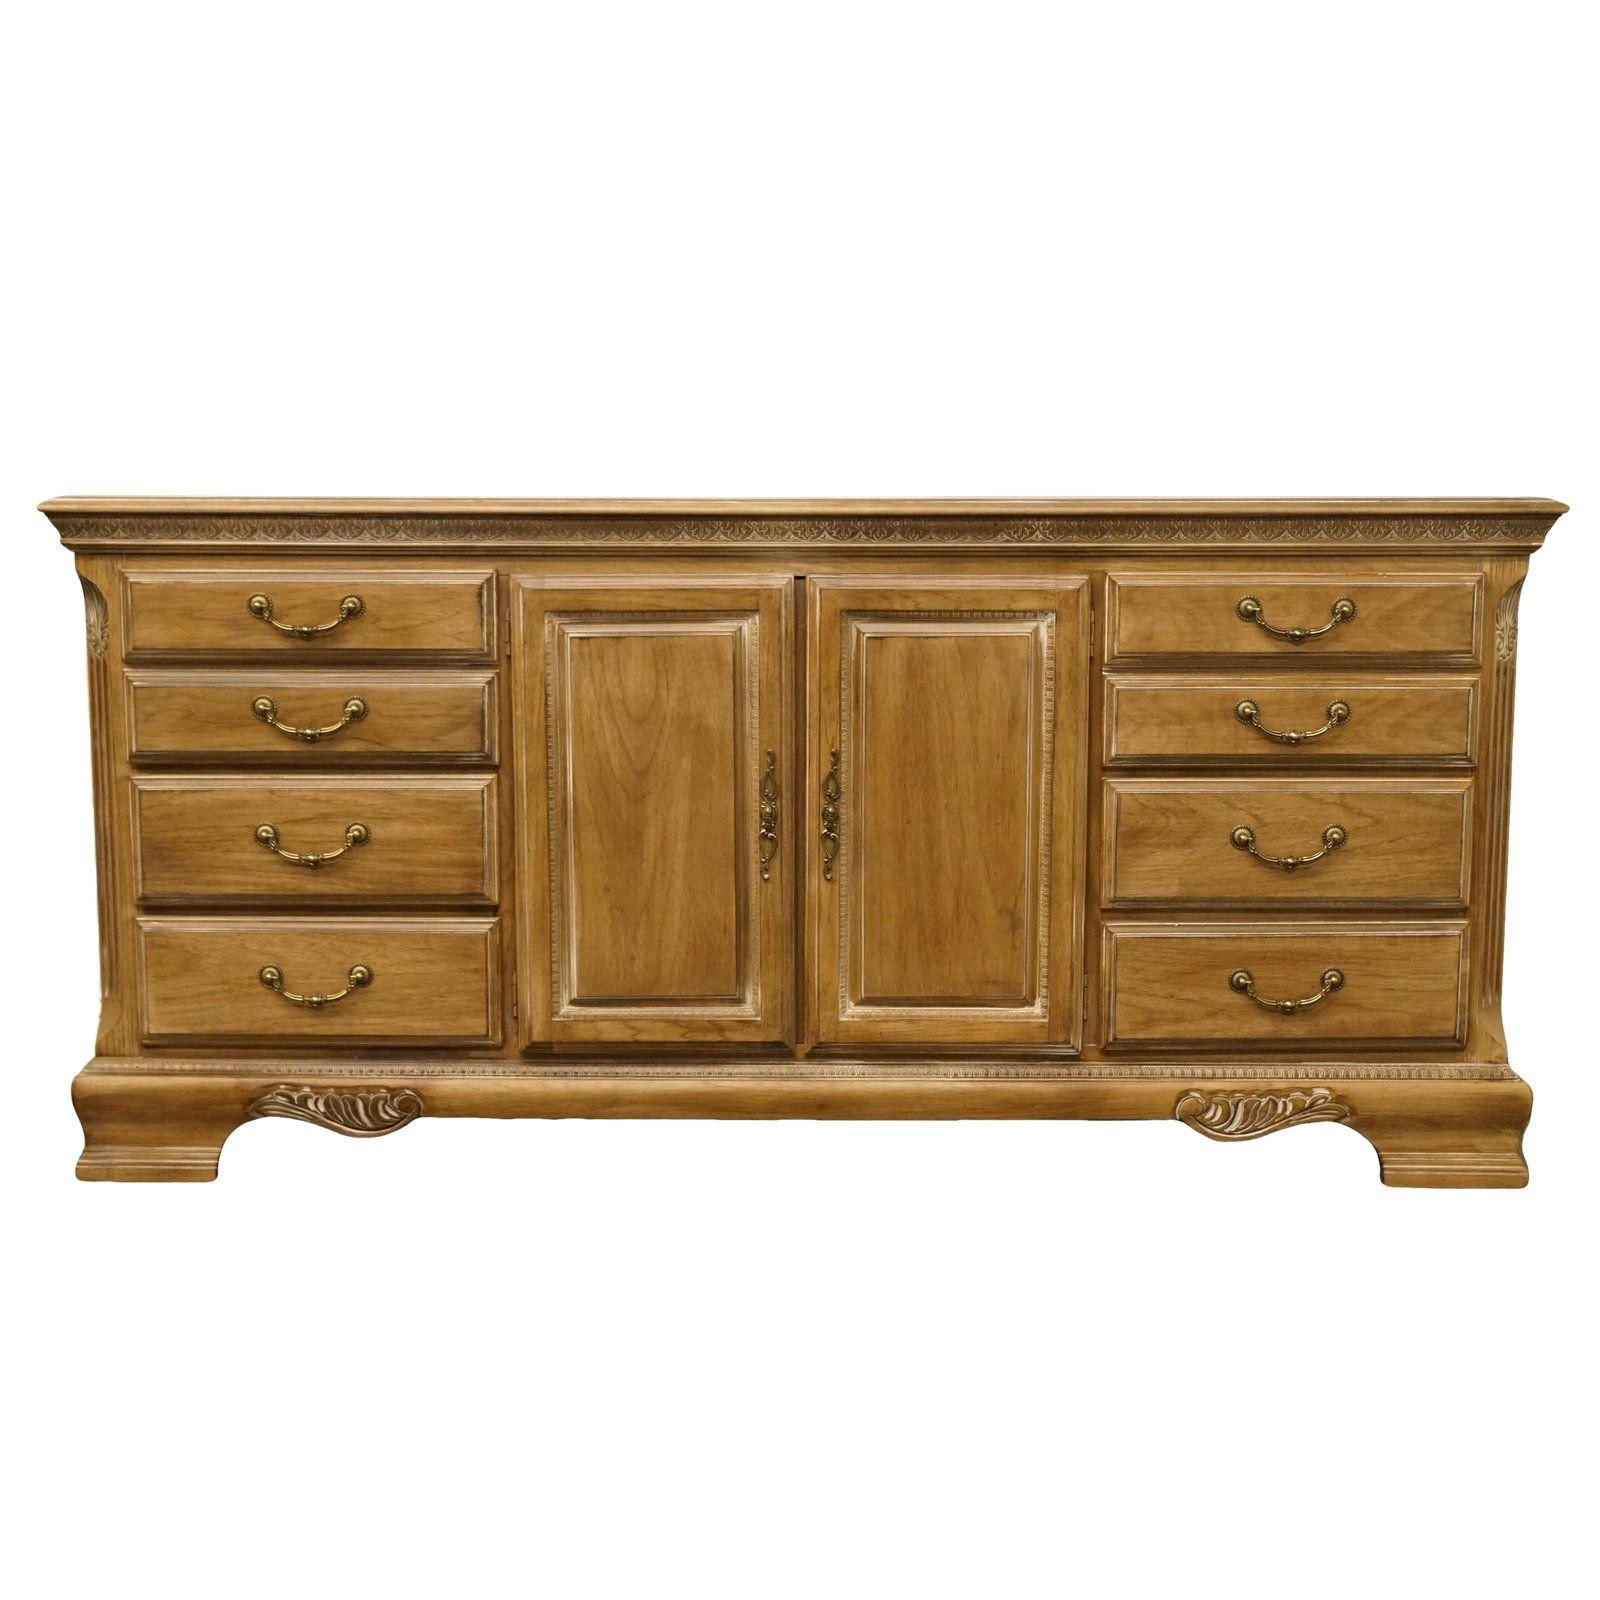 Bedroom Dressers for Sale Luxury 20th Century Traditional Lexington Furniture Camden Hall